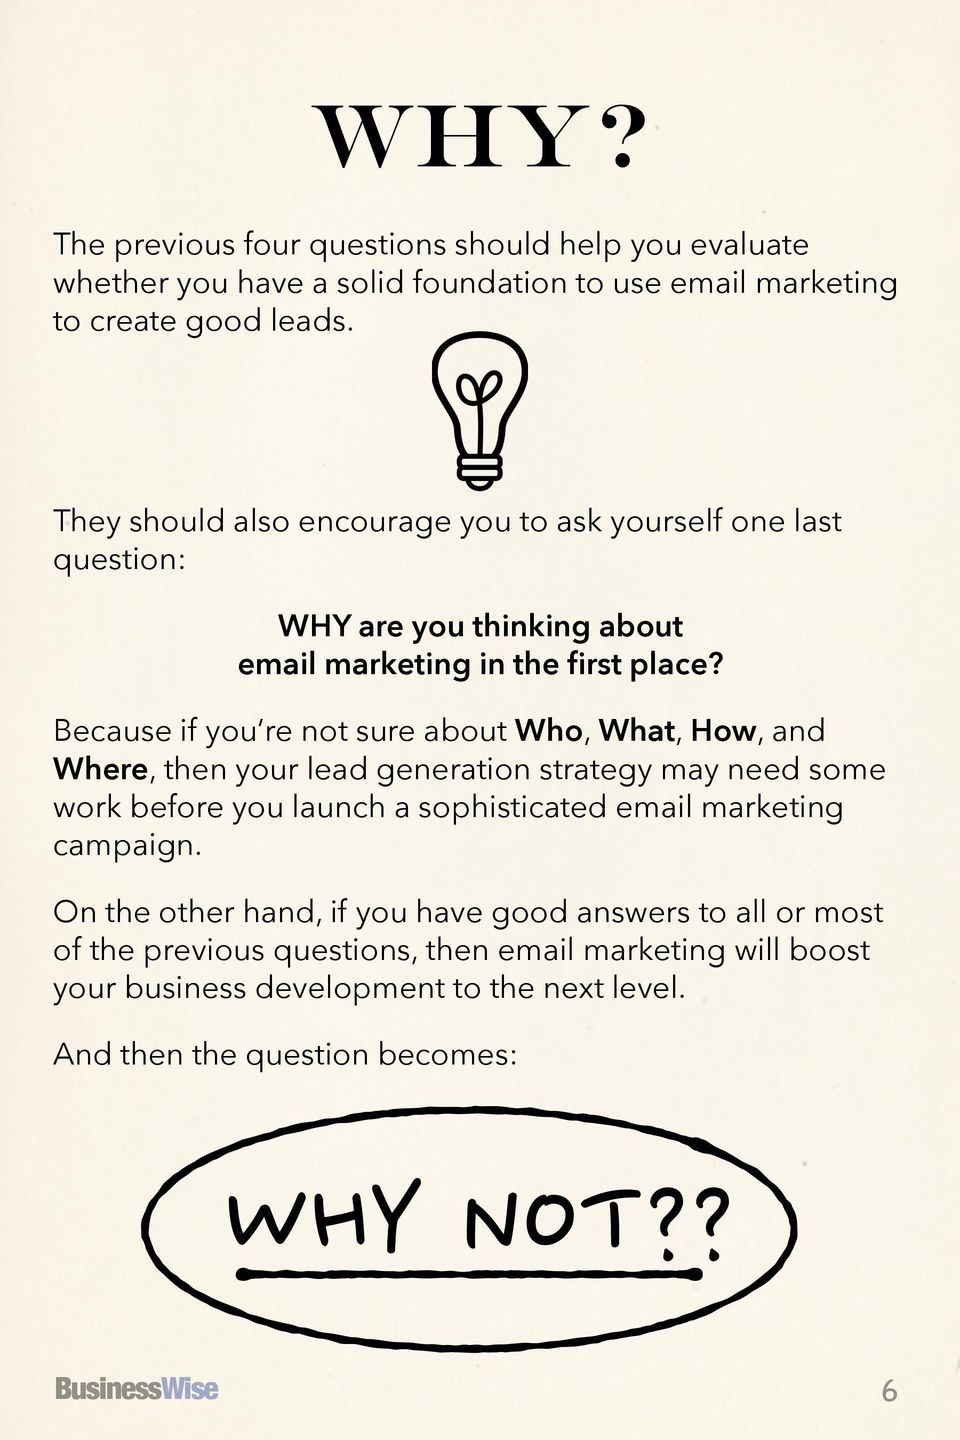 Because if you re not sure about Who, What, How, and Where, then your lead generation strategy may need some work before you launch a sophisticated email marketing